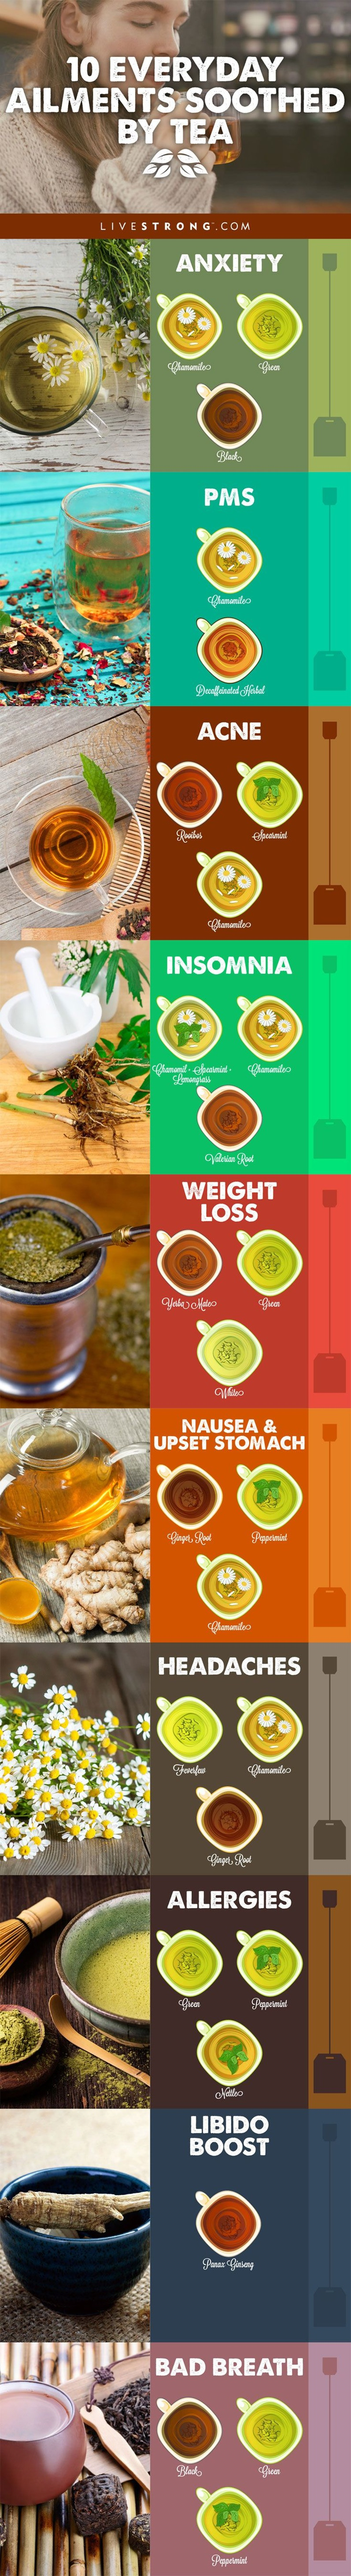 Ailments that can be Healed with Tea - Infographic